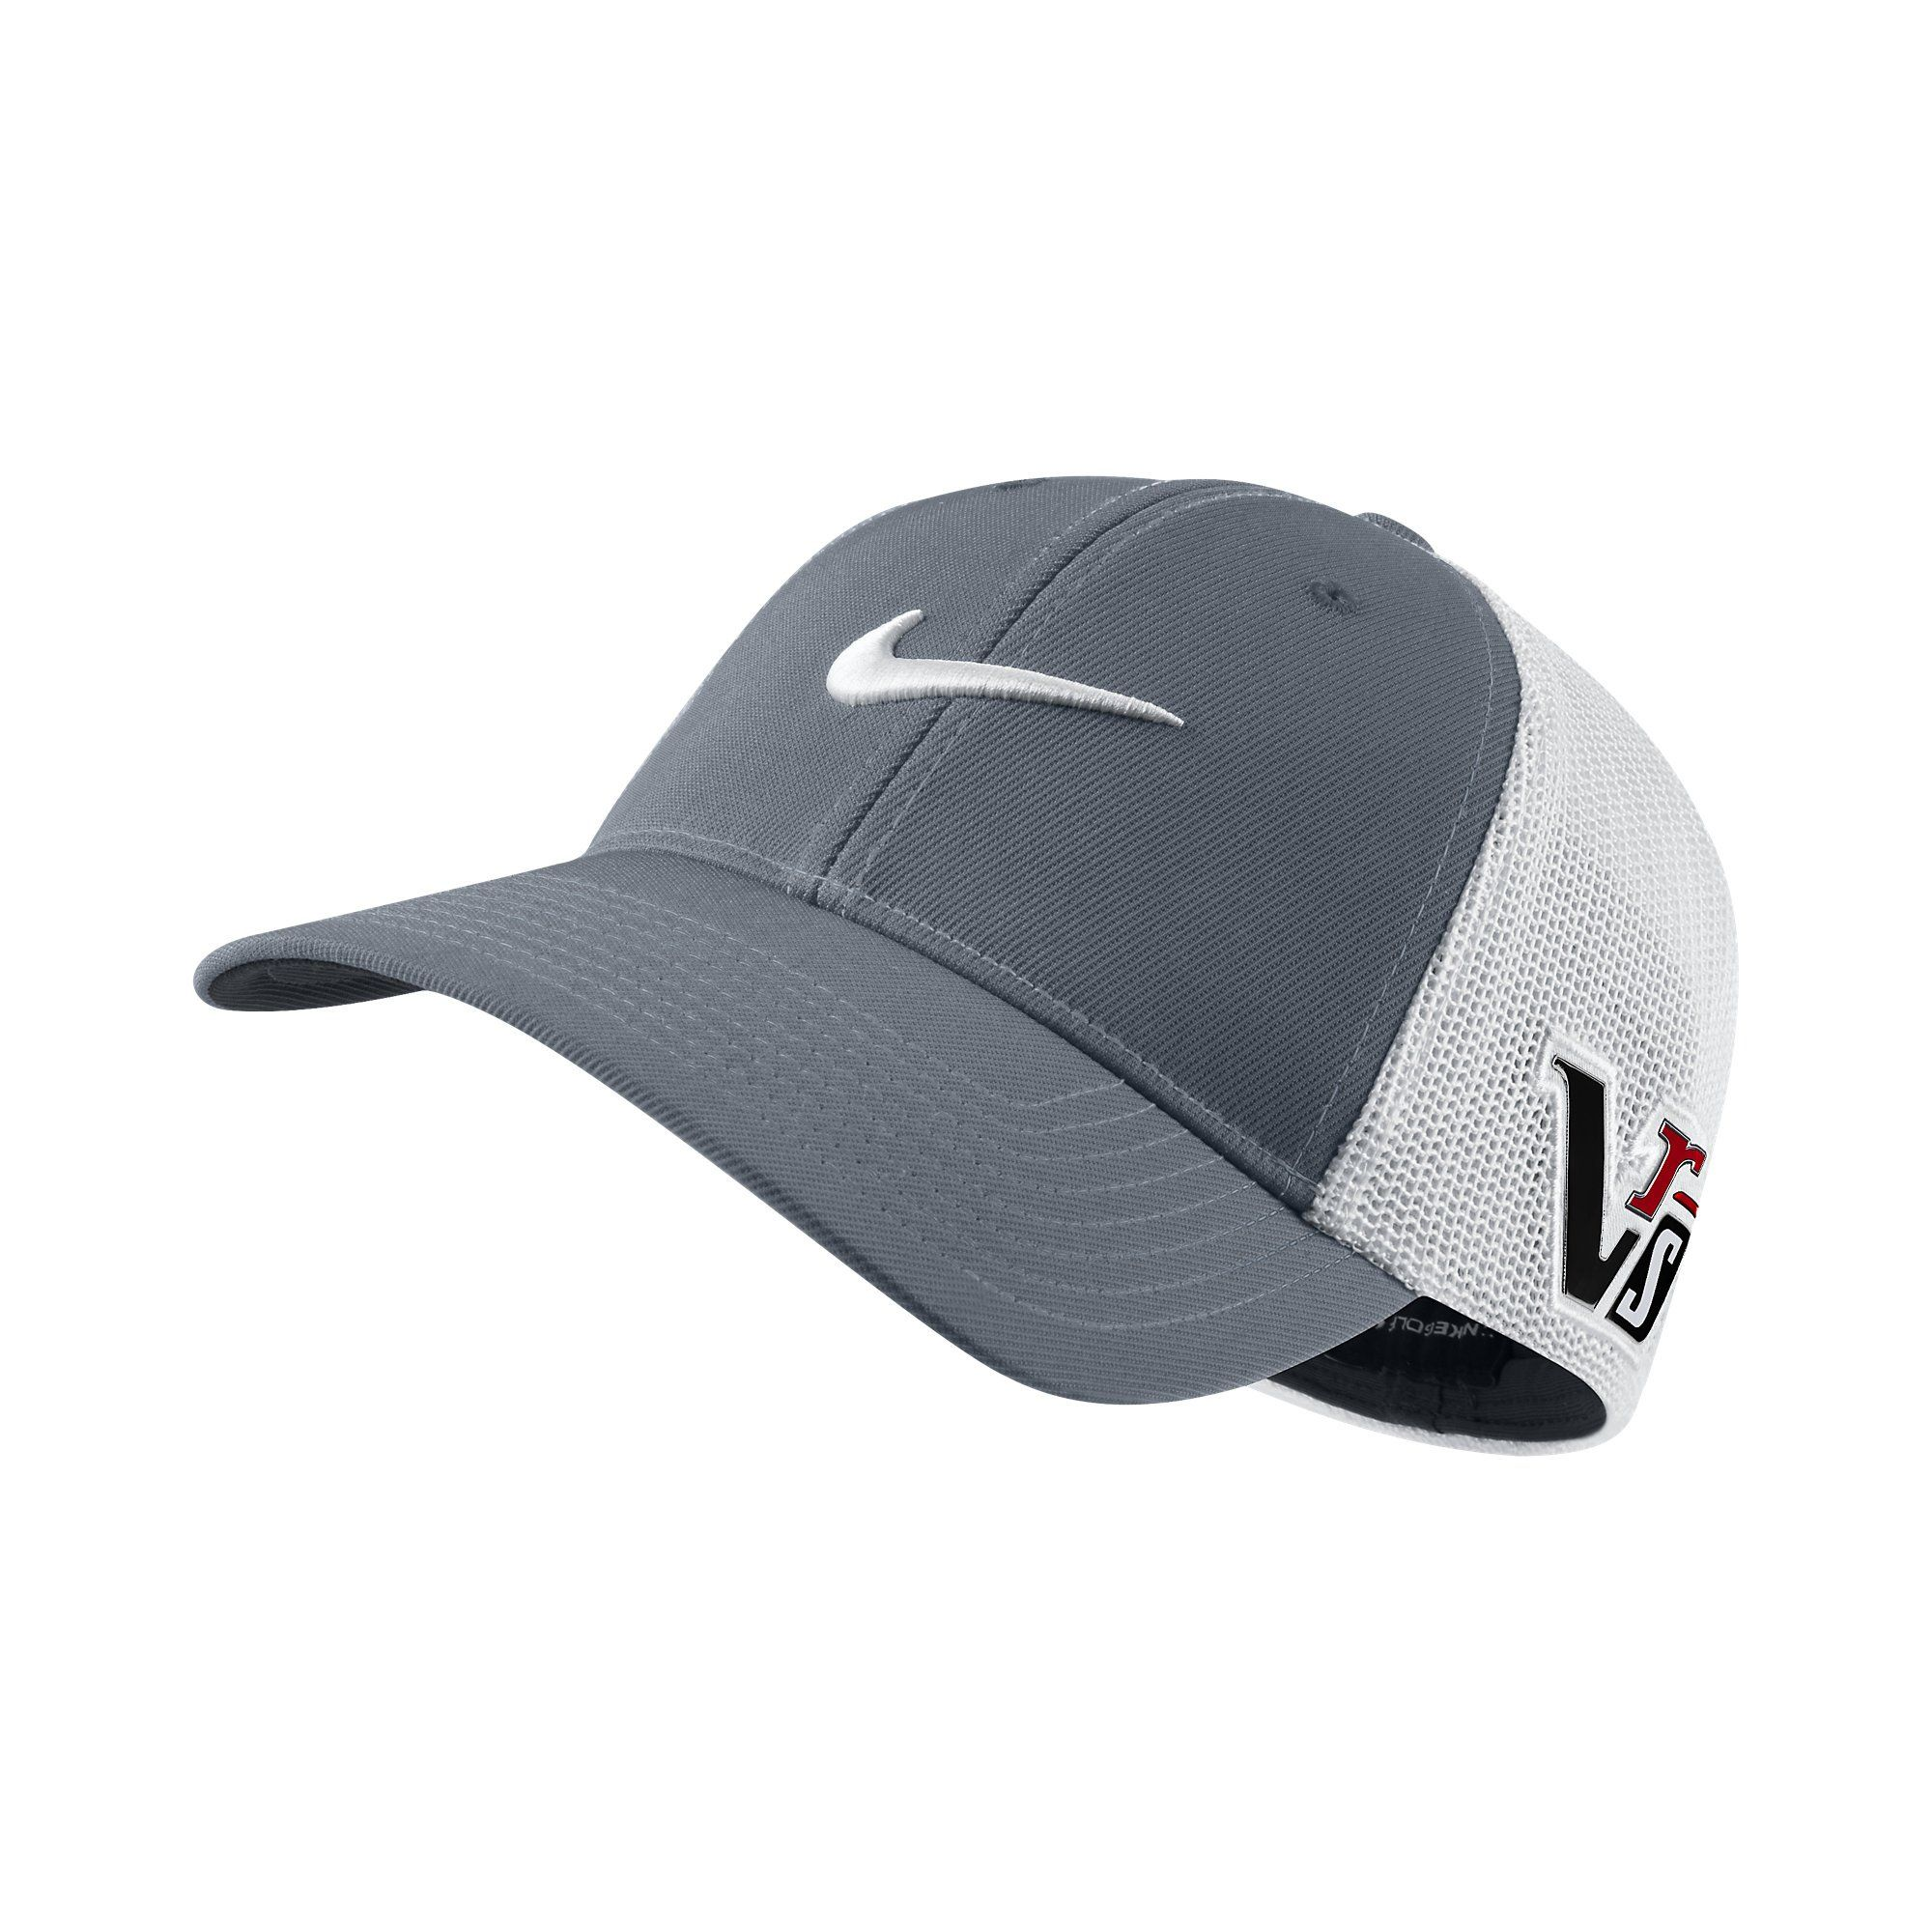 c2dea69f2d90cc Amazon.com: Nike Men's Tour Flex Fit Golf Cap Hat, Dark Grey/White, M/L:  Clothing